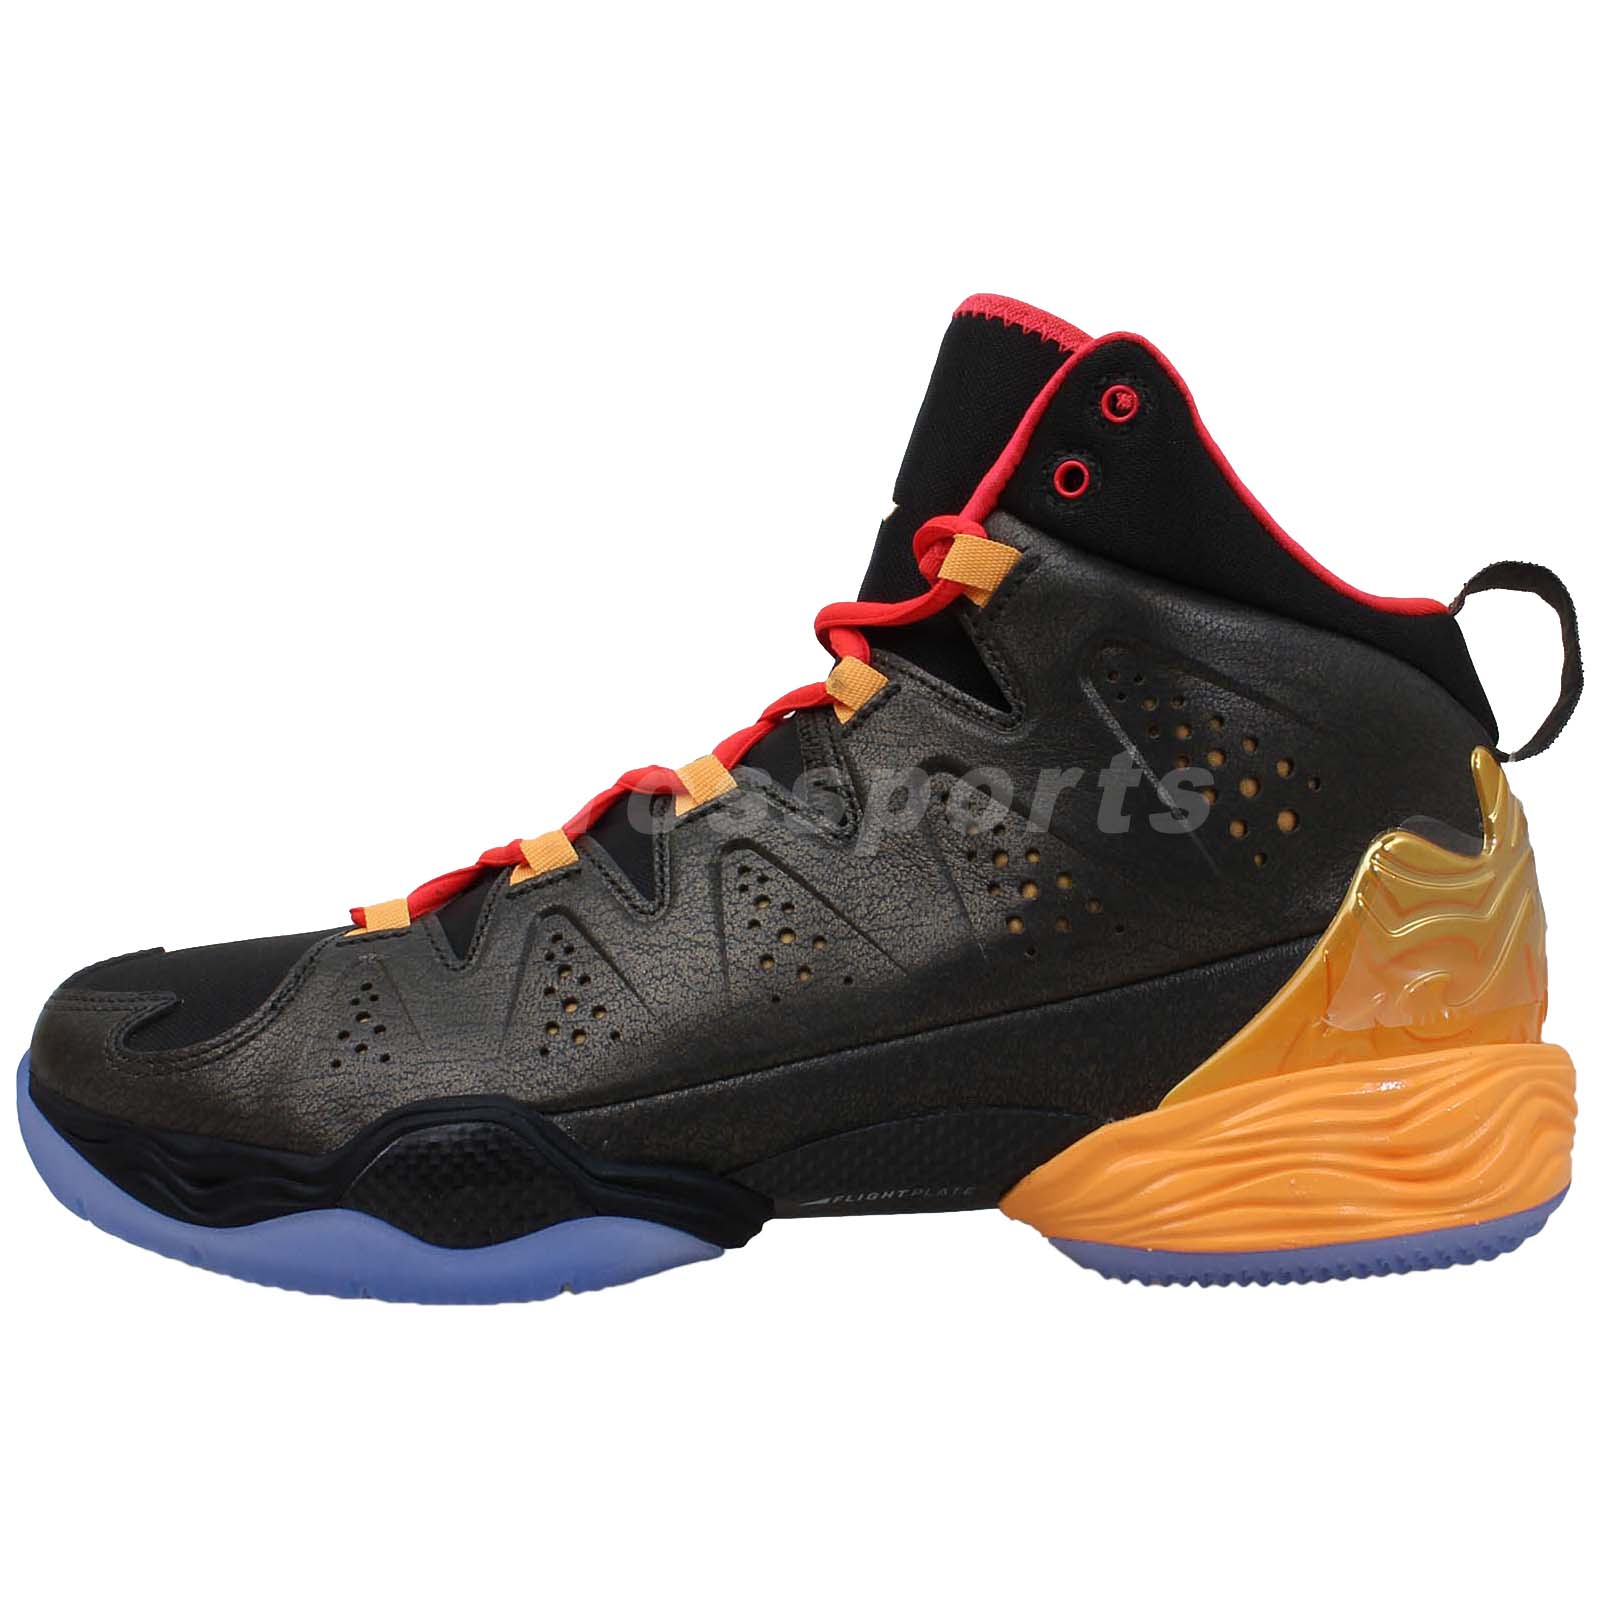 carmelo anthony shoes m10